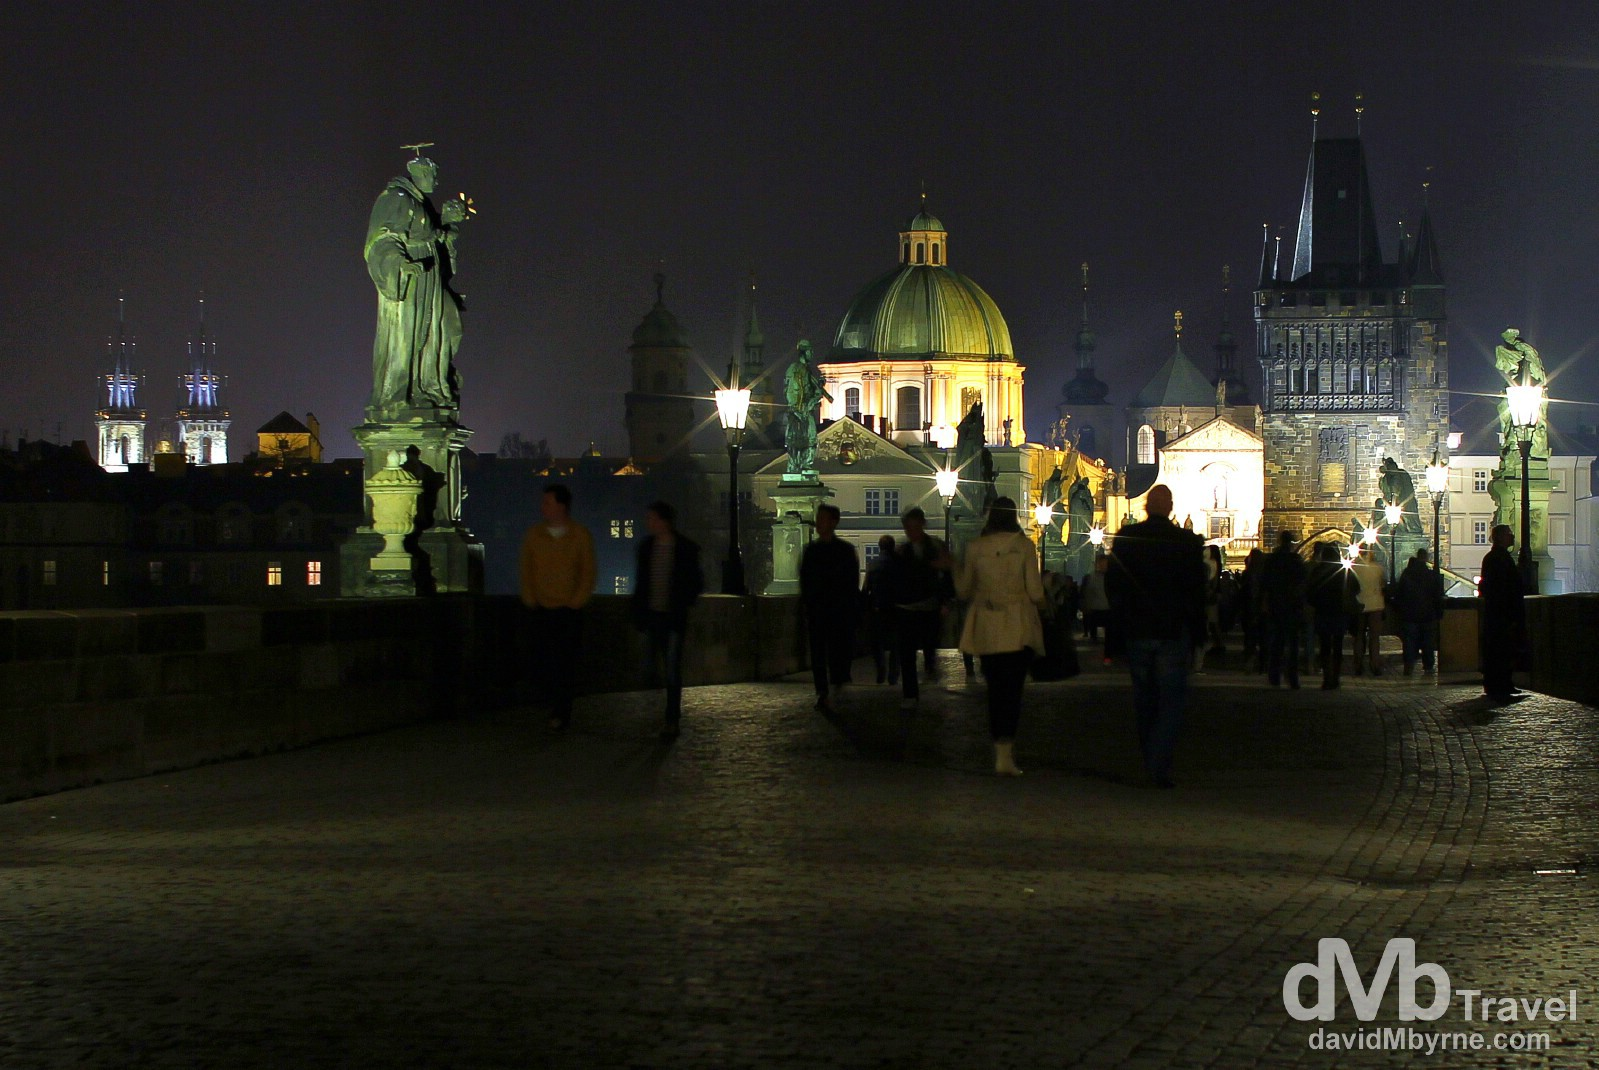 Karluv most (Charles Bridge), Prague, Czech Republic. March 31st, 2014.